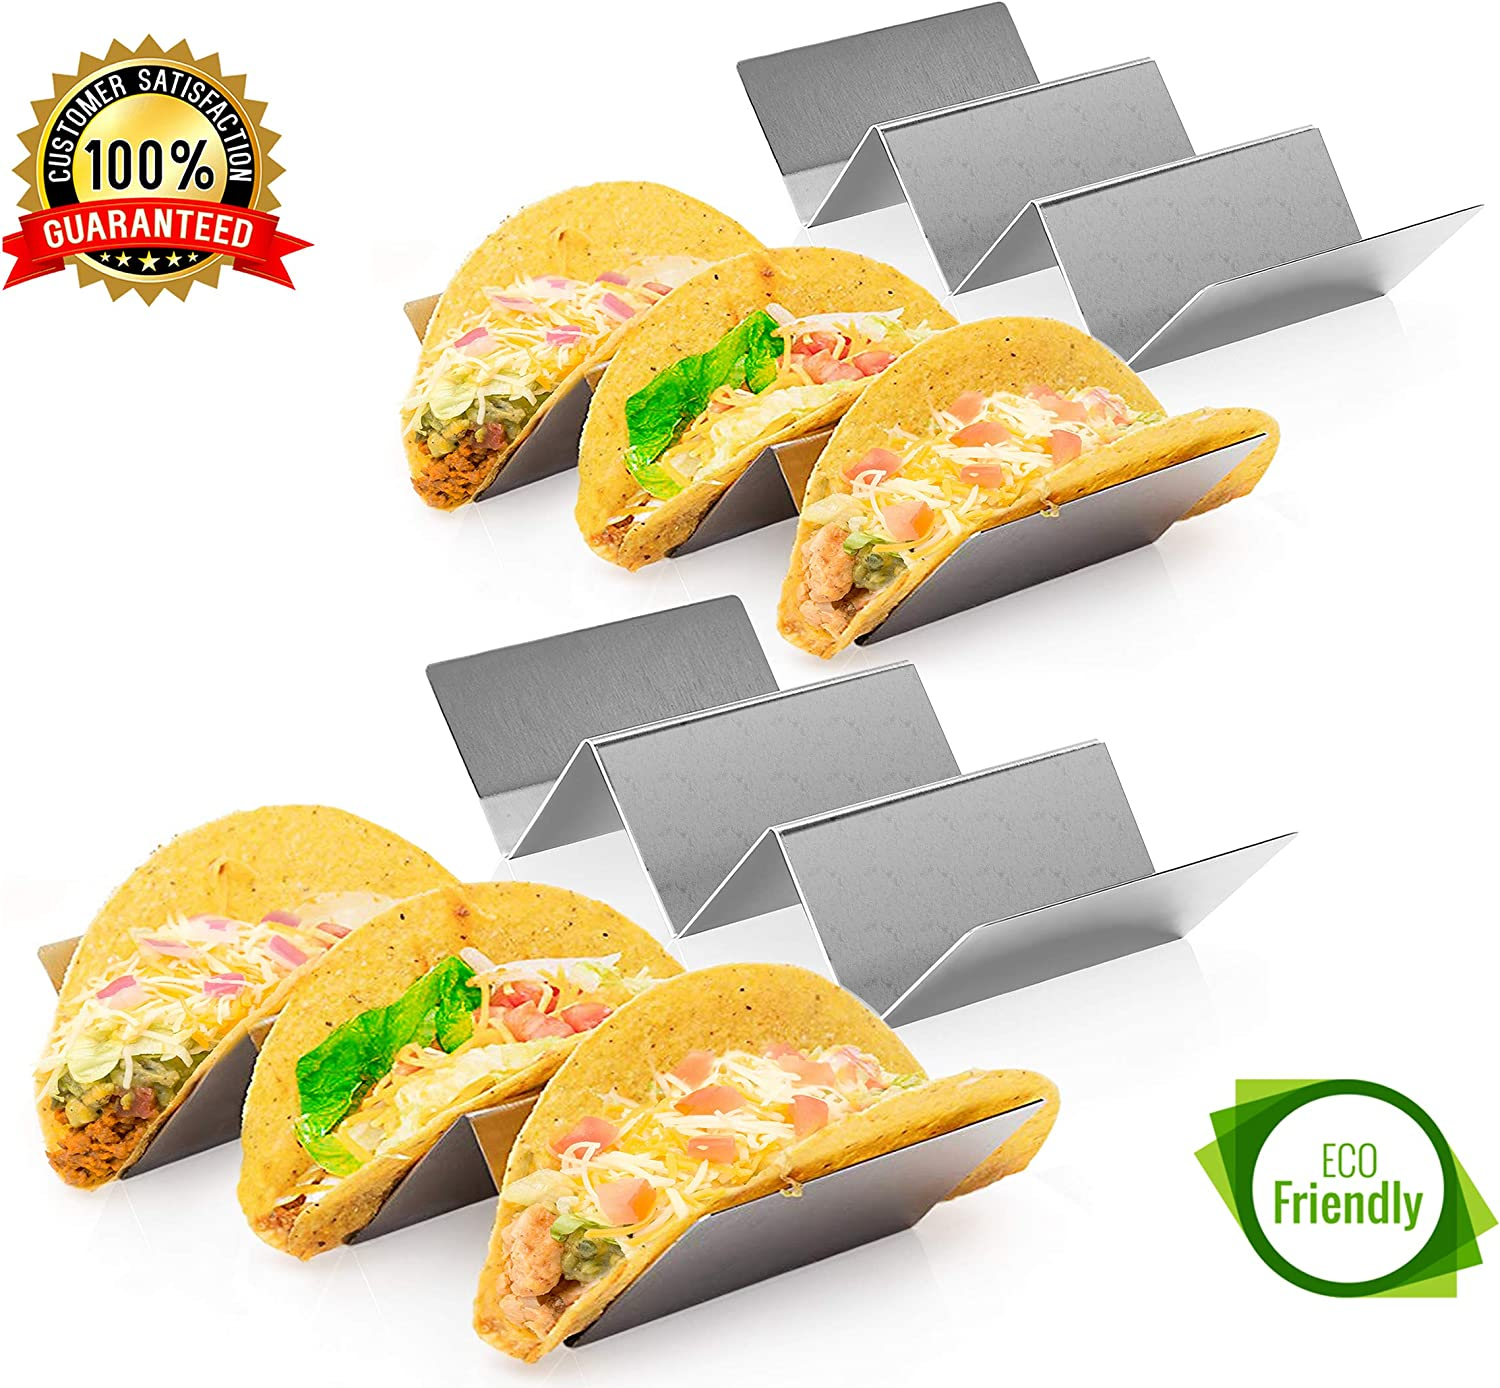 "4 Pack Stainless Steel Taco Holder Tray, Taco Truck Stand Holds Up To 3 Tacos Each as Plates, Use as a Shell Baking Rack - Safe for Dishwasher, Oven, and Grill, Holders Size 8"" x 4"" x 2"""